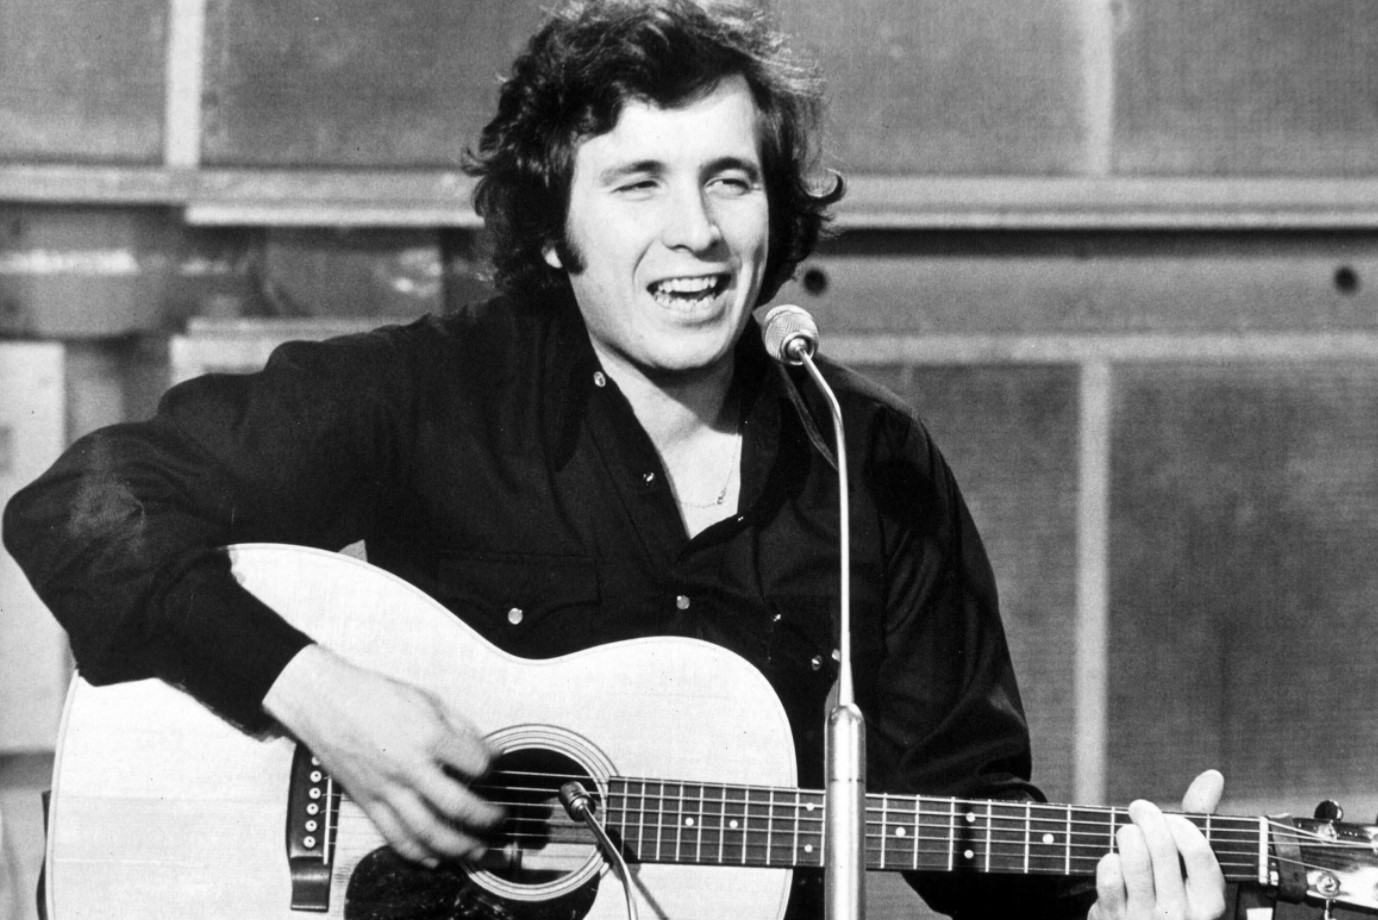 What was the top selling song of the 1970s?